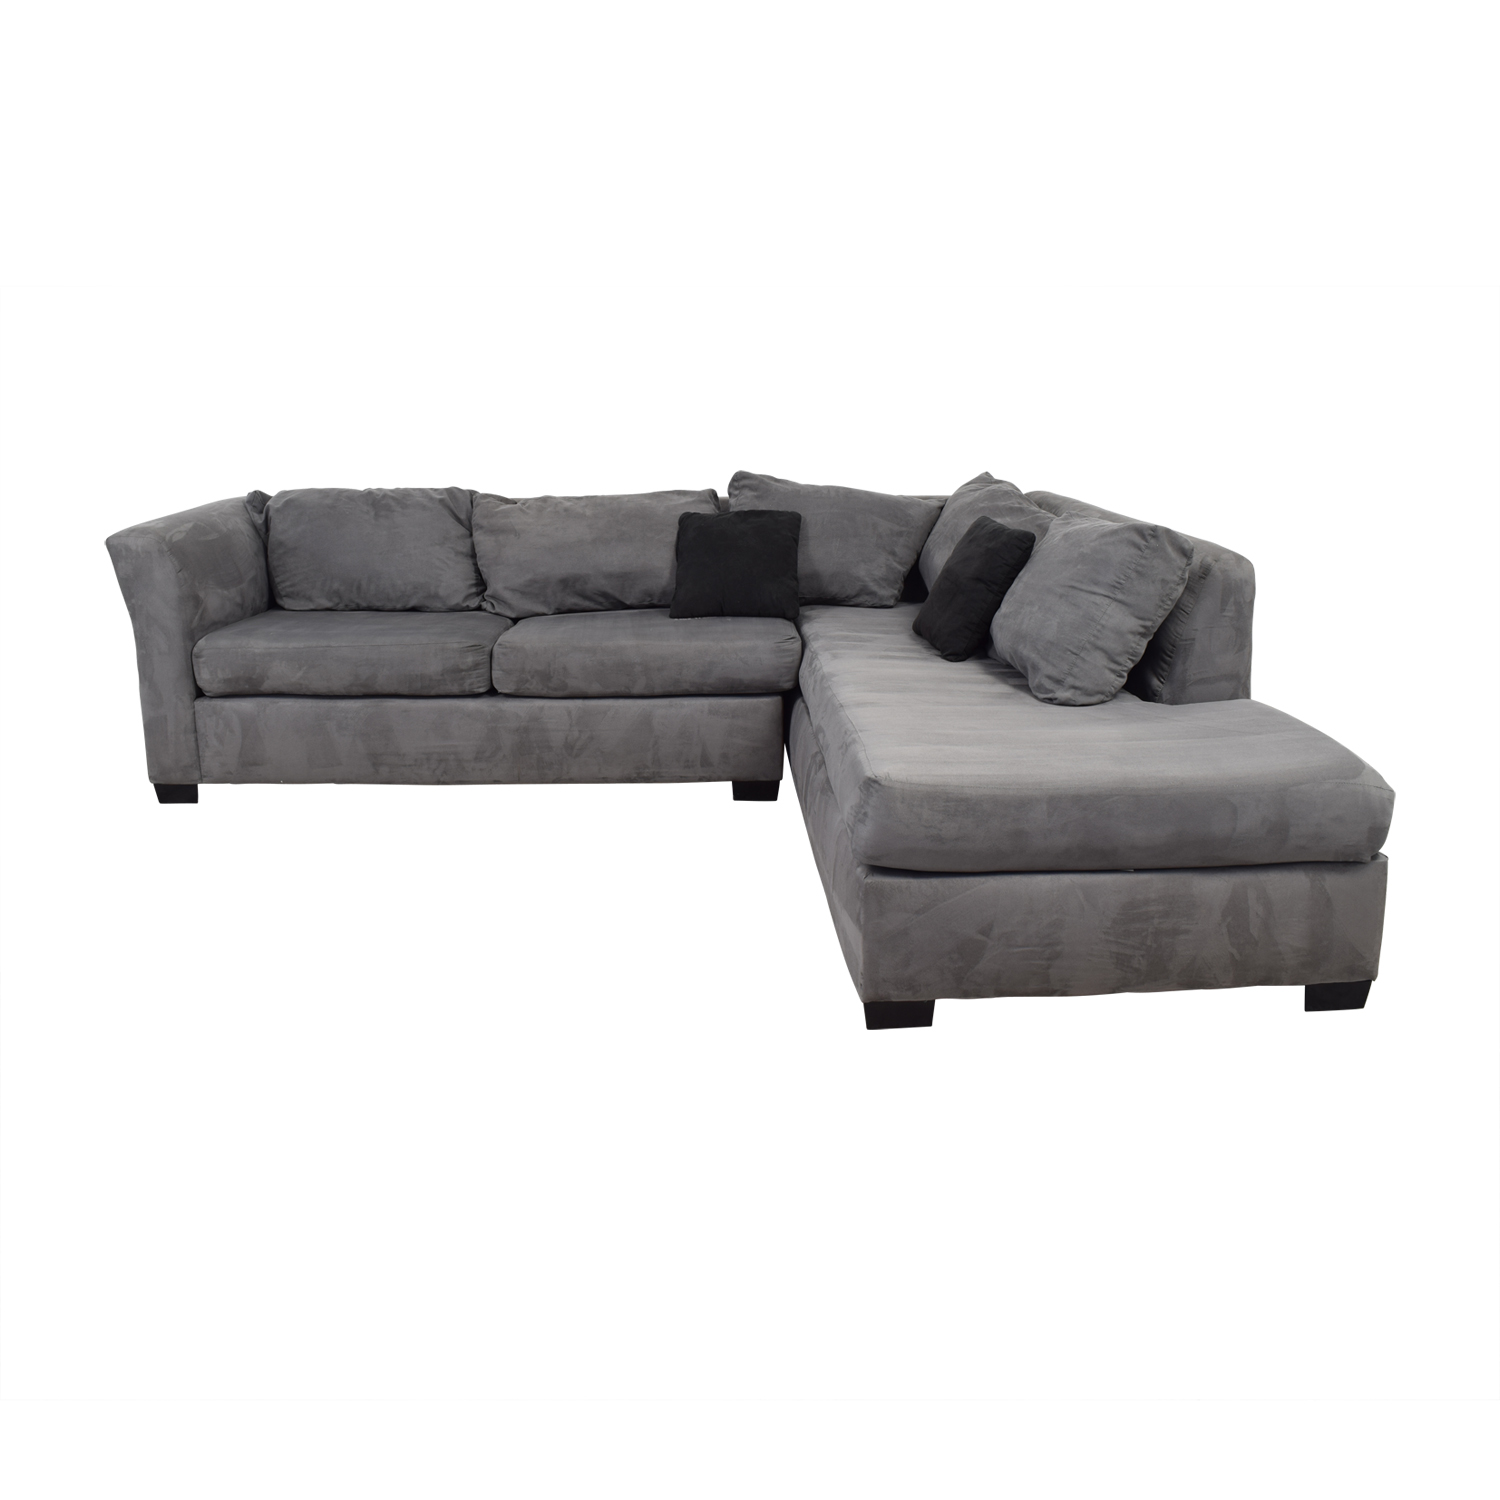 Custom Gray Microfiber L-Shaped Sectional dimensions